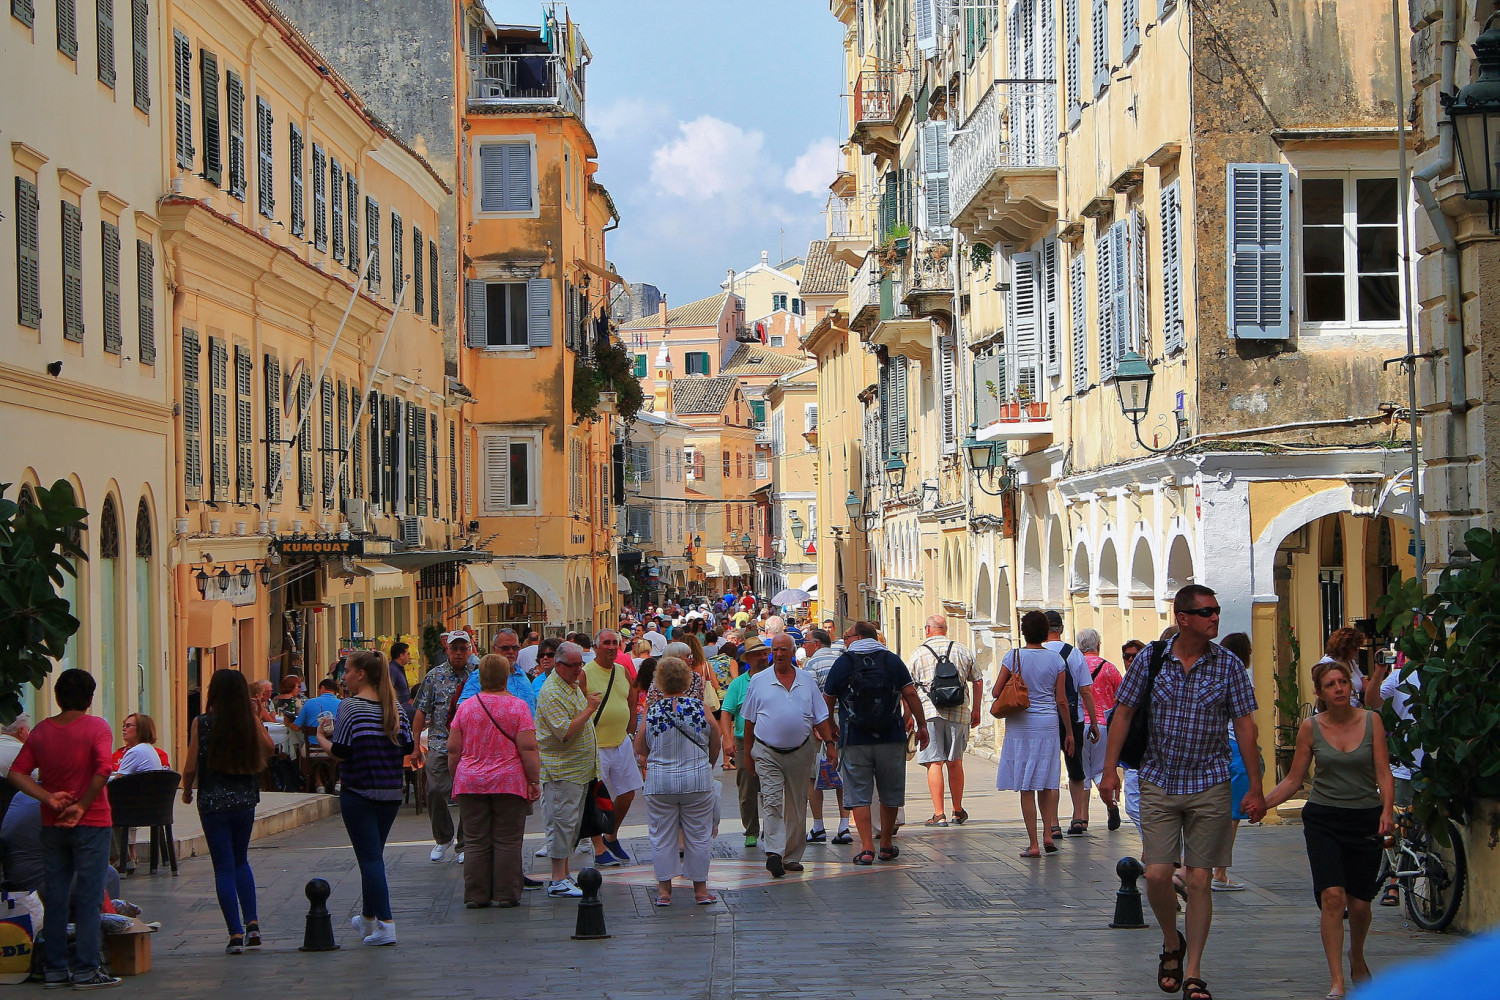 Corfu, Greece: Let's Explore A Perfect Pedestrian Oasis